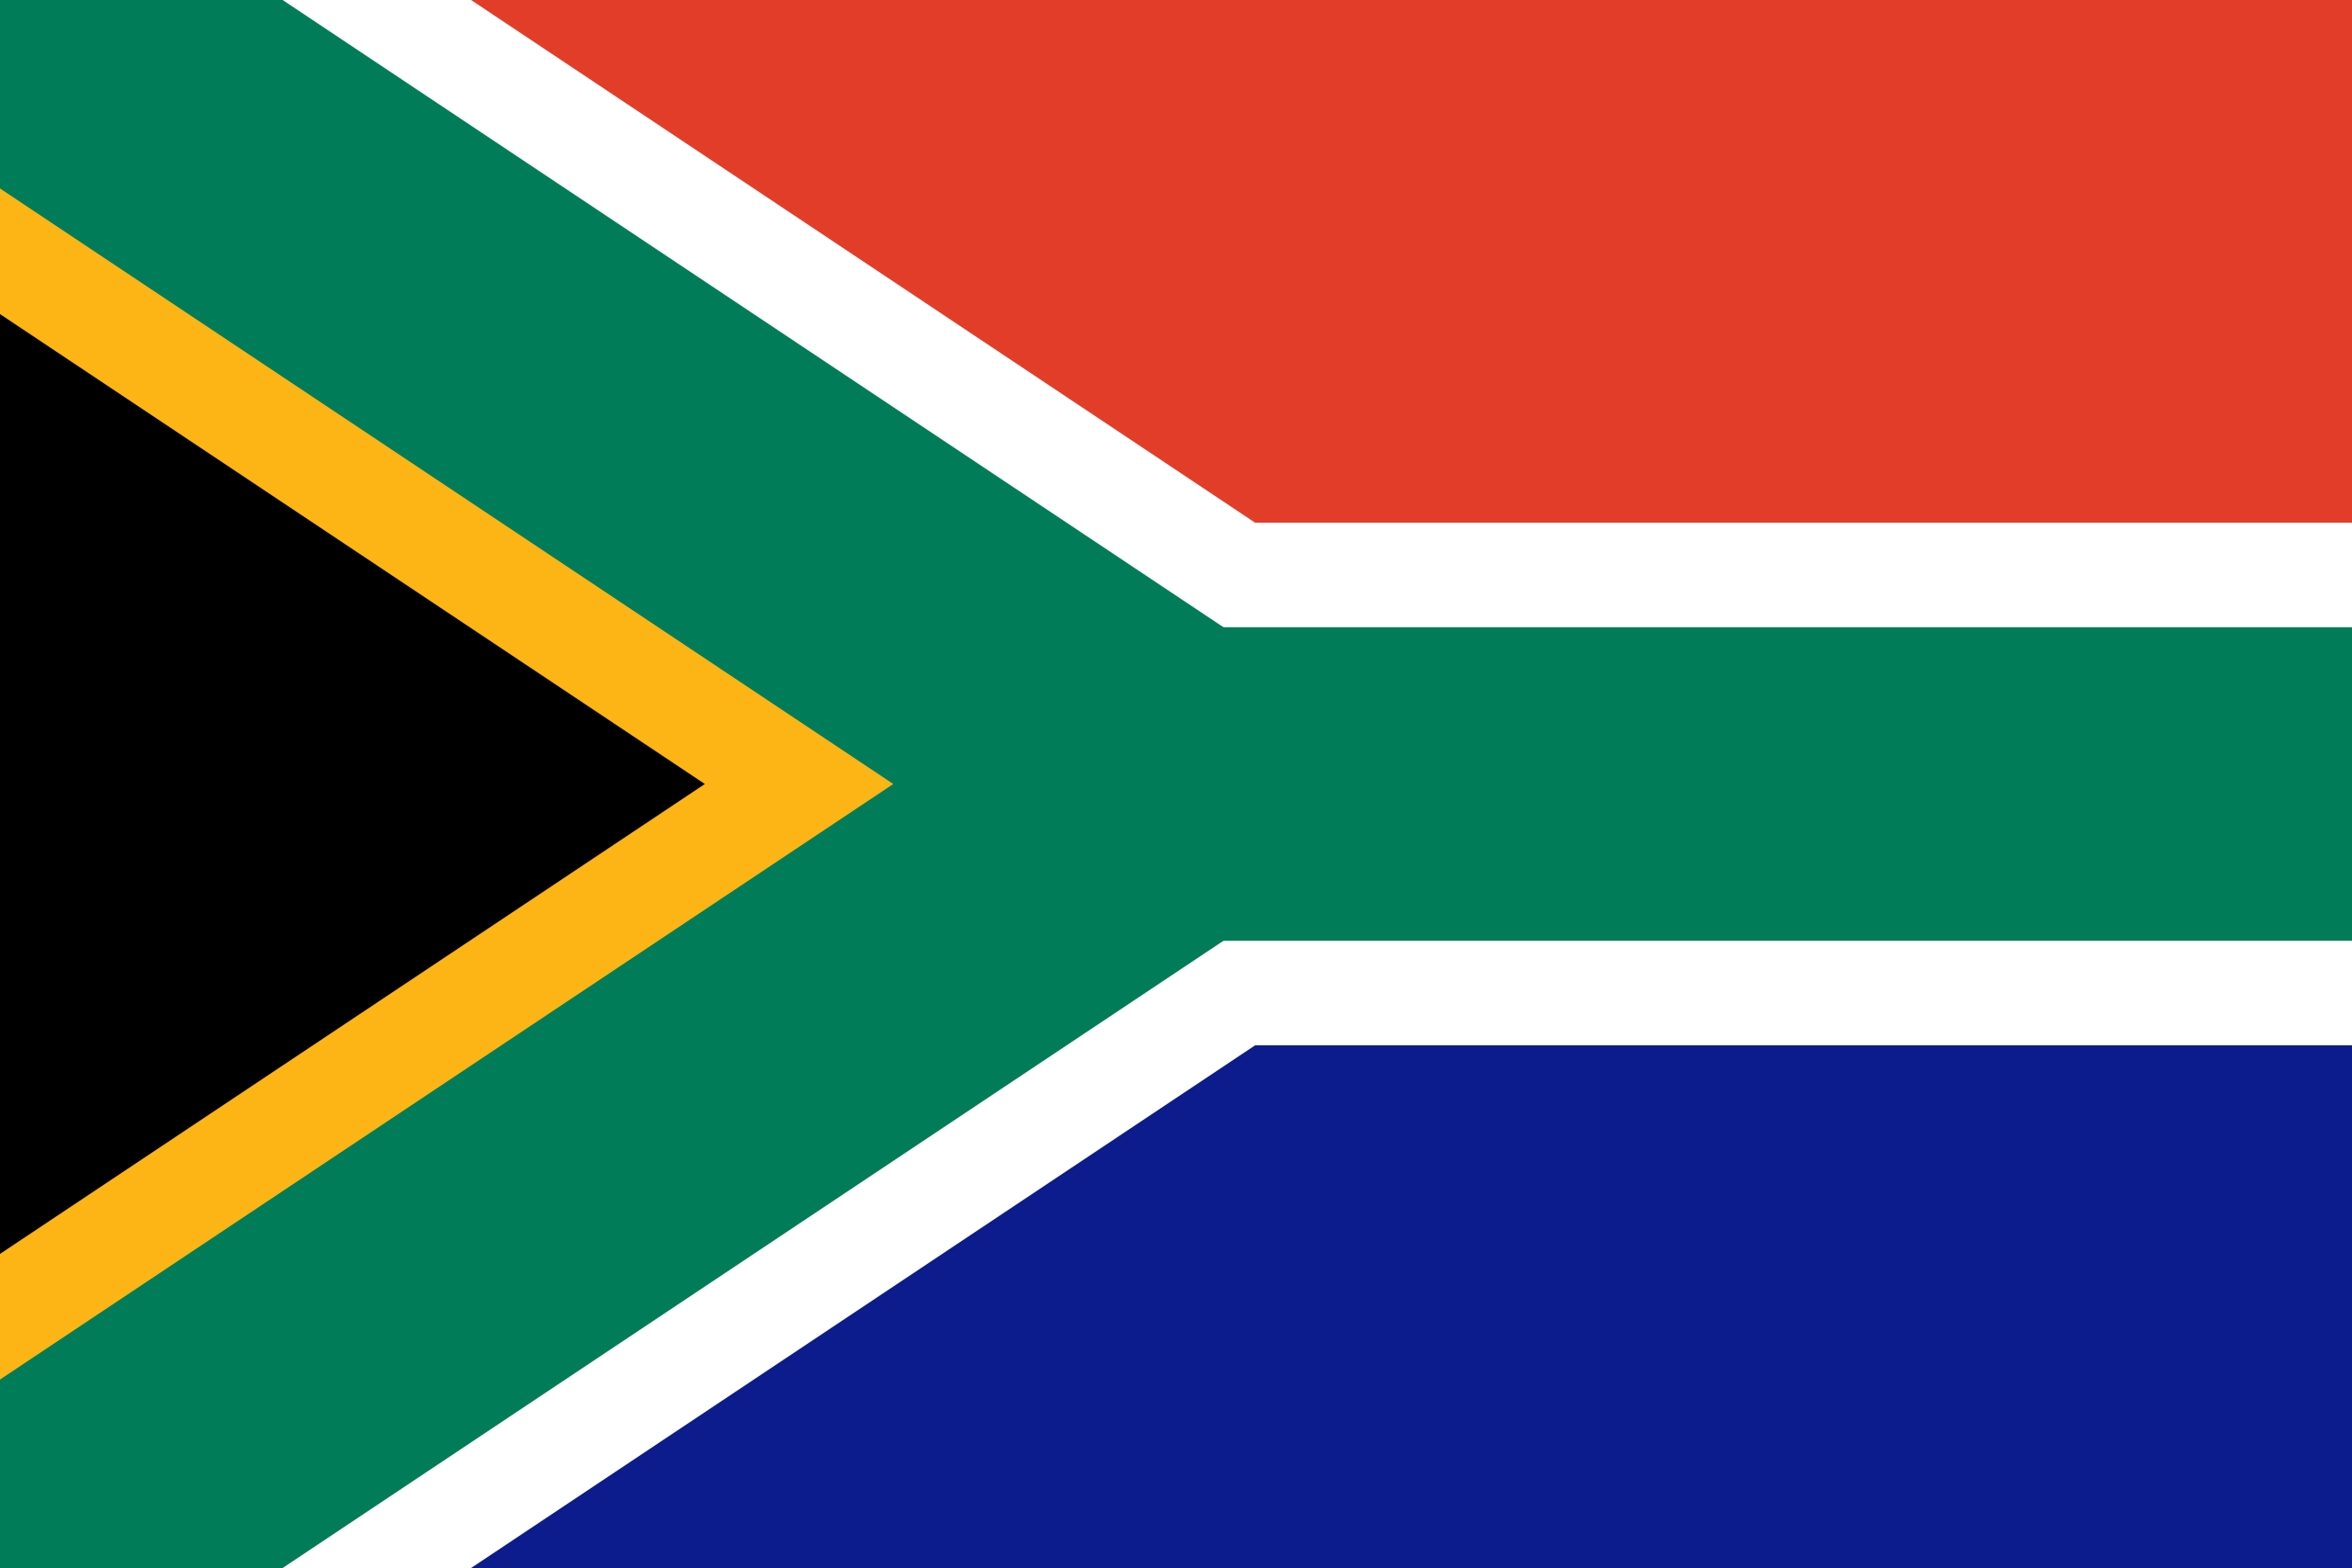 https://aerospaceexport.com/wp-content/uploads/2019/10/south-africa.png